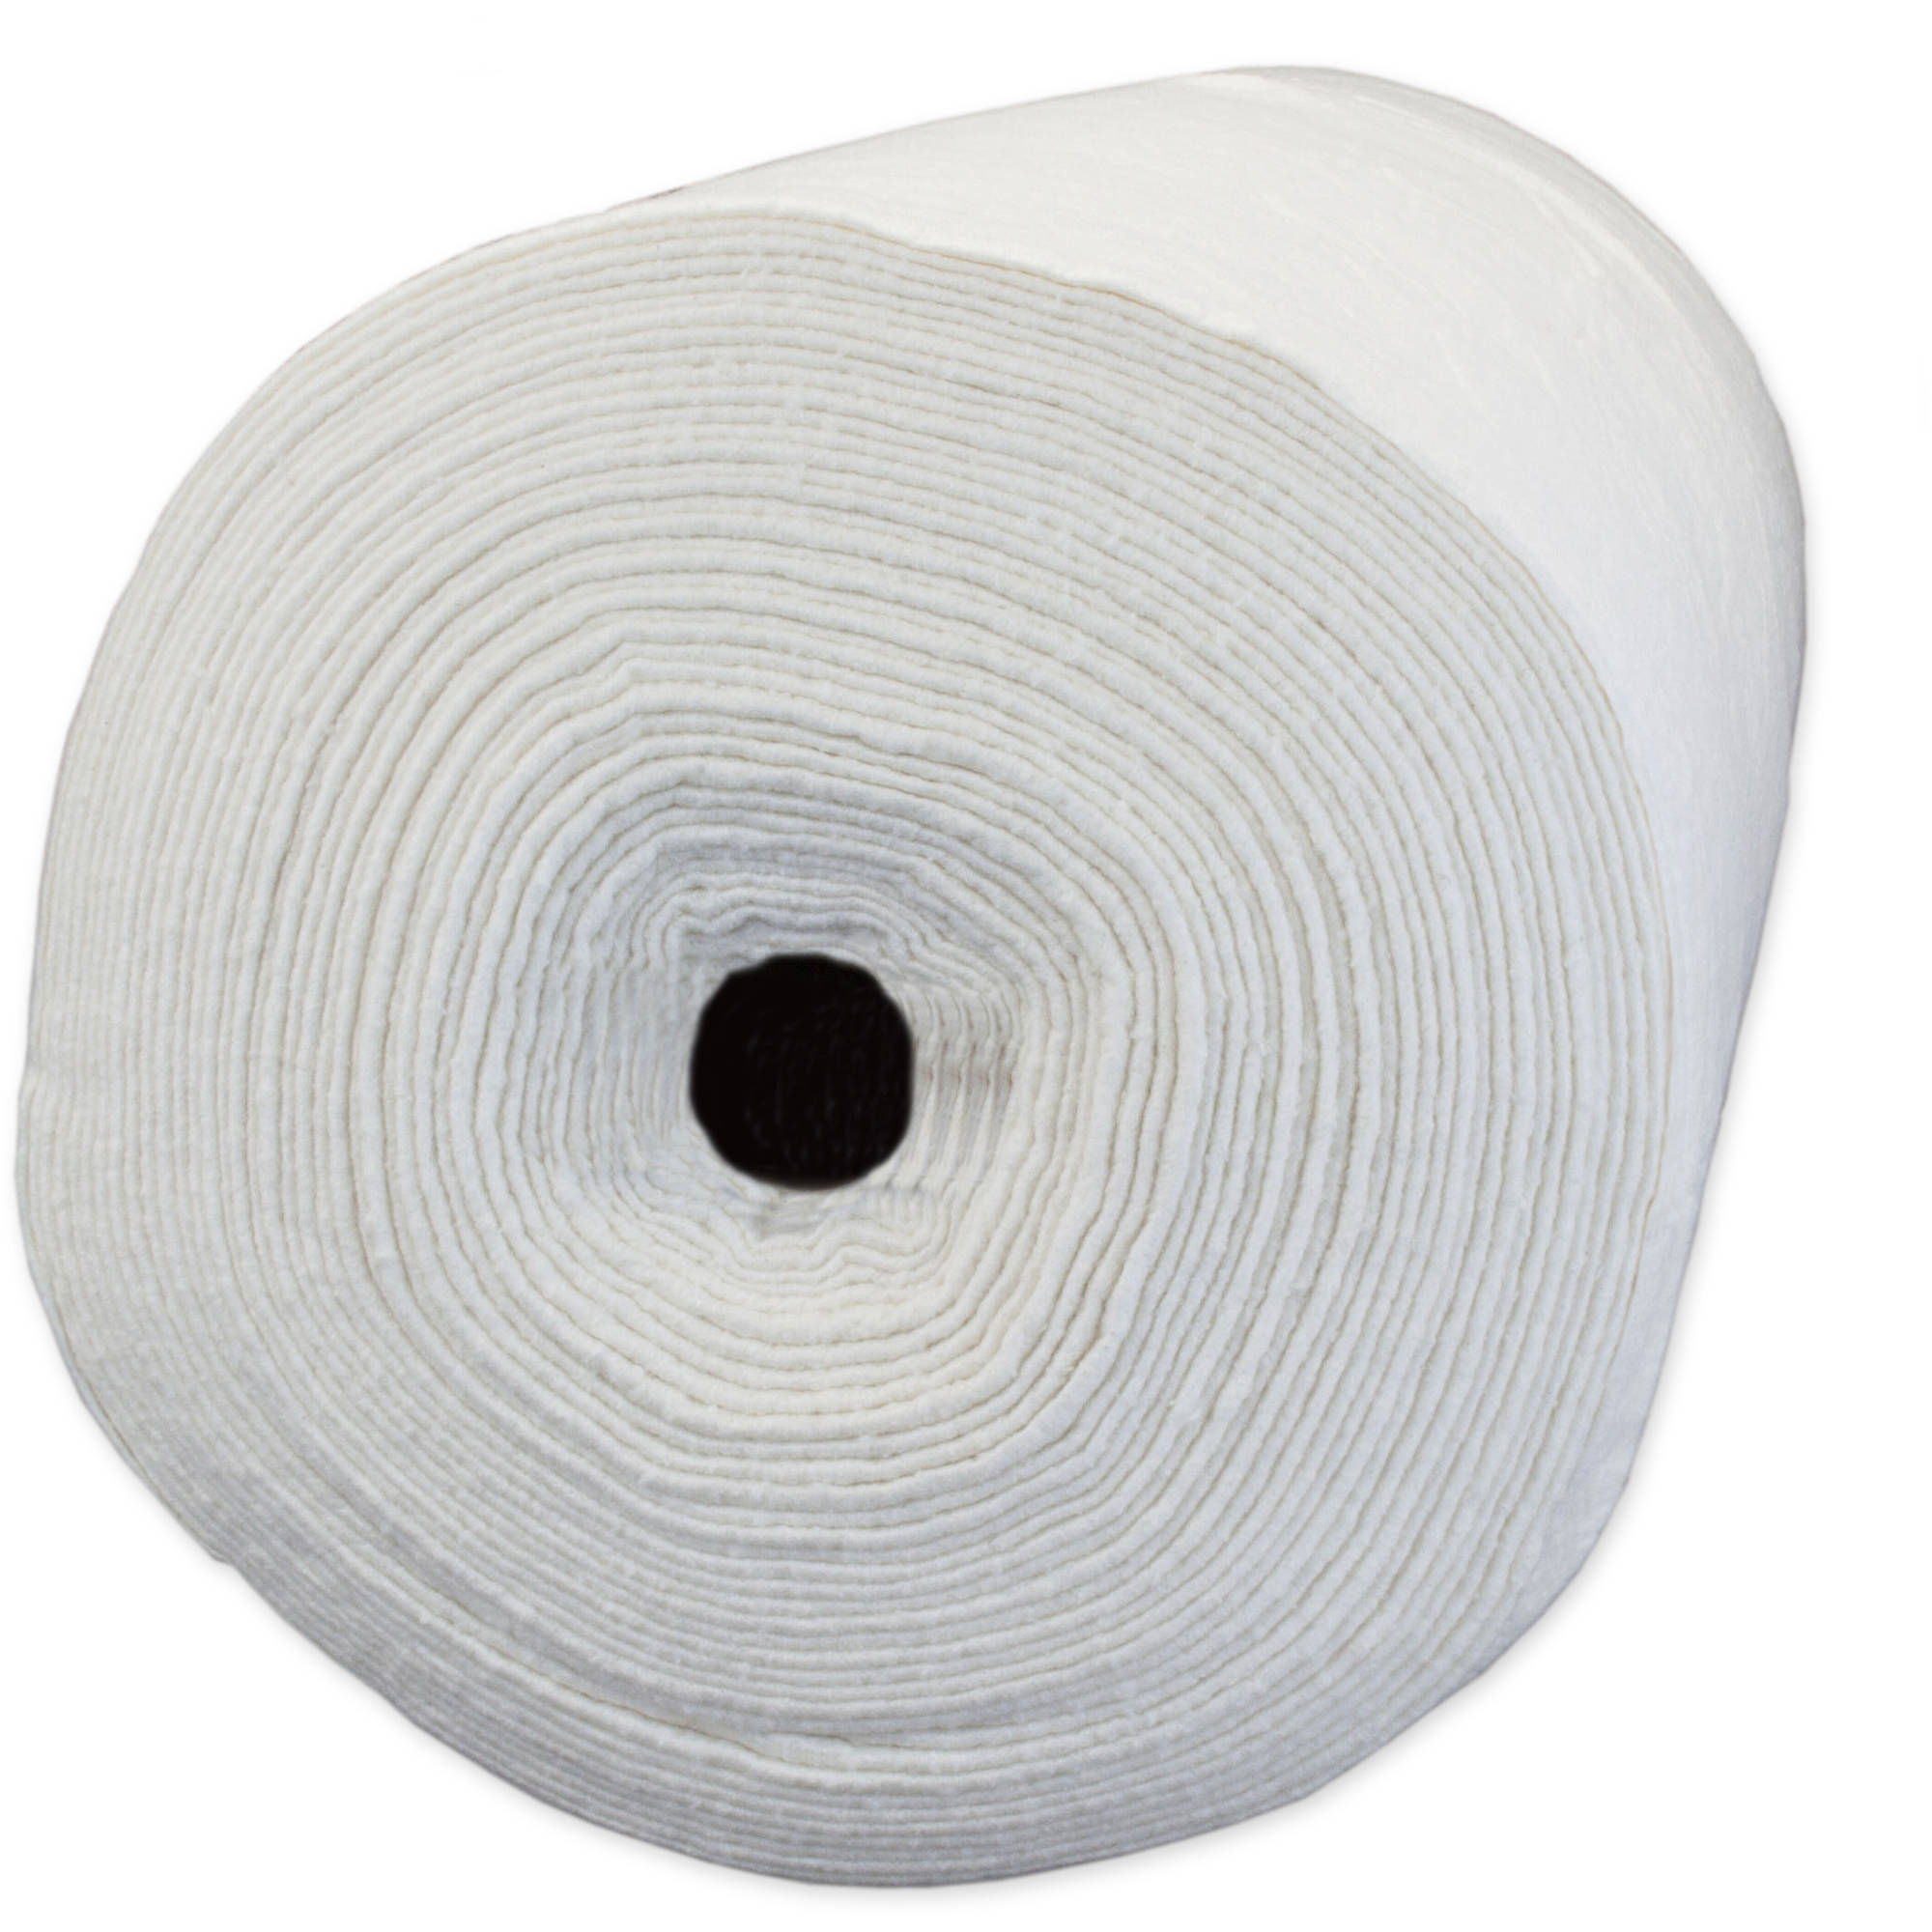 "Pellon Natures Touch Bamboo Blend Batting, 96"" Wide, 30 Yard Roll"